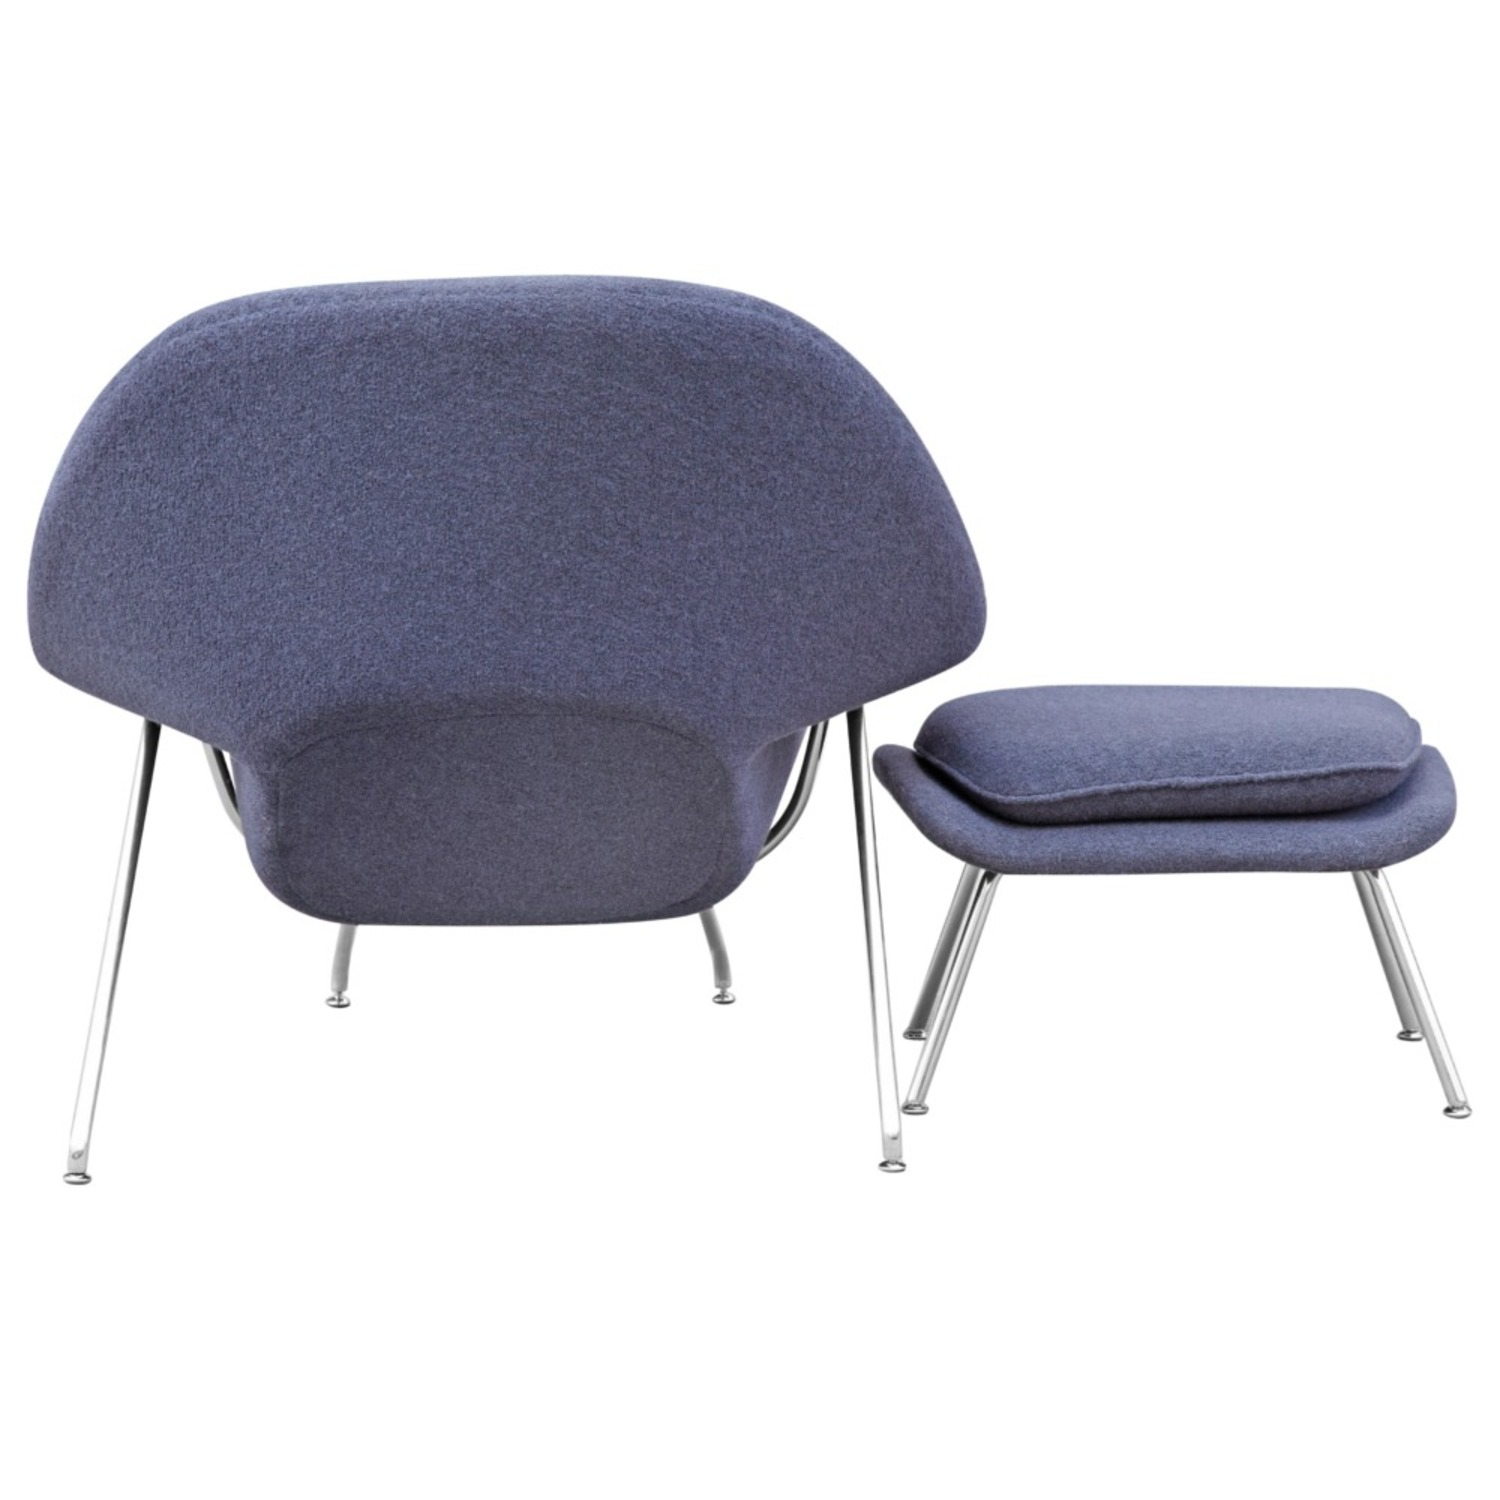 Chair & Ottoman Covered In Gray Wool Fabric - image-2